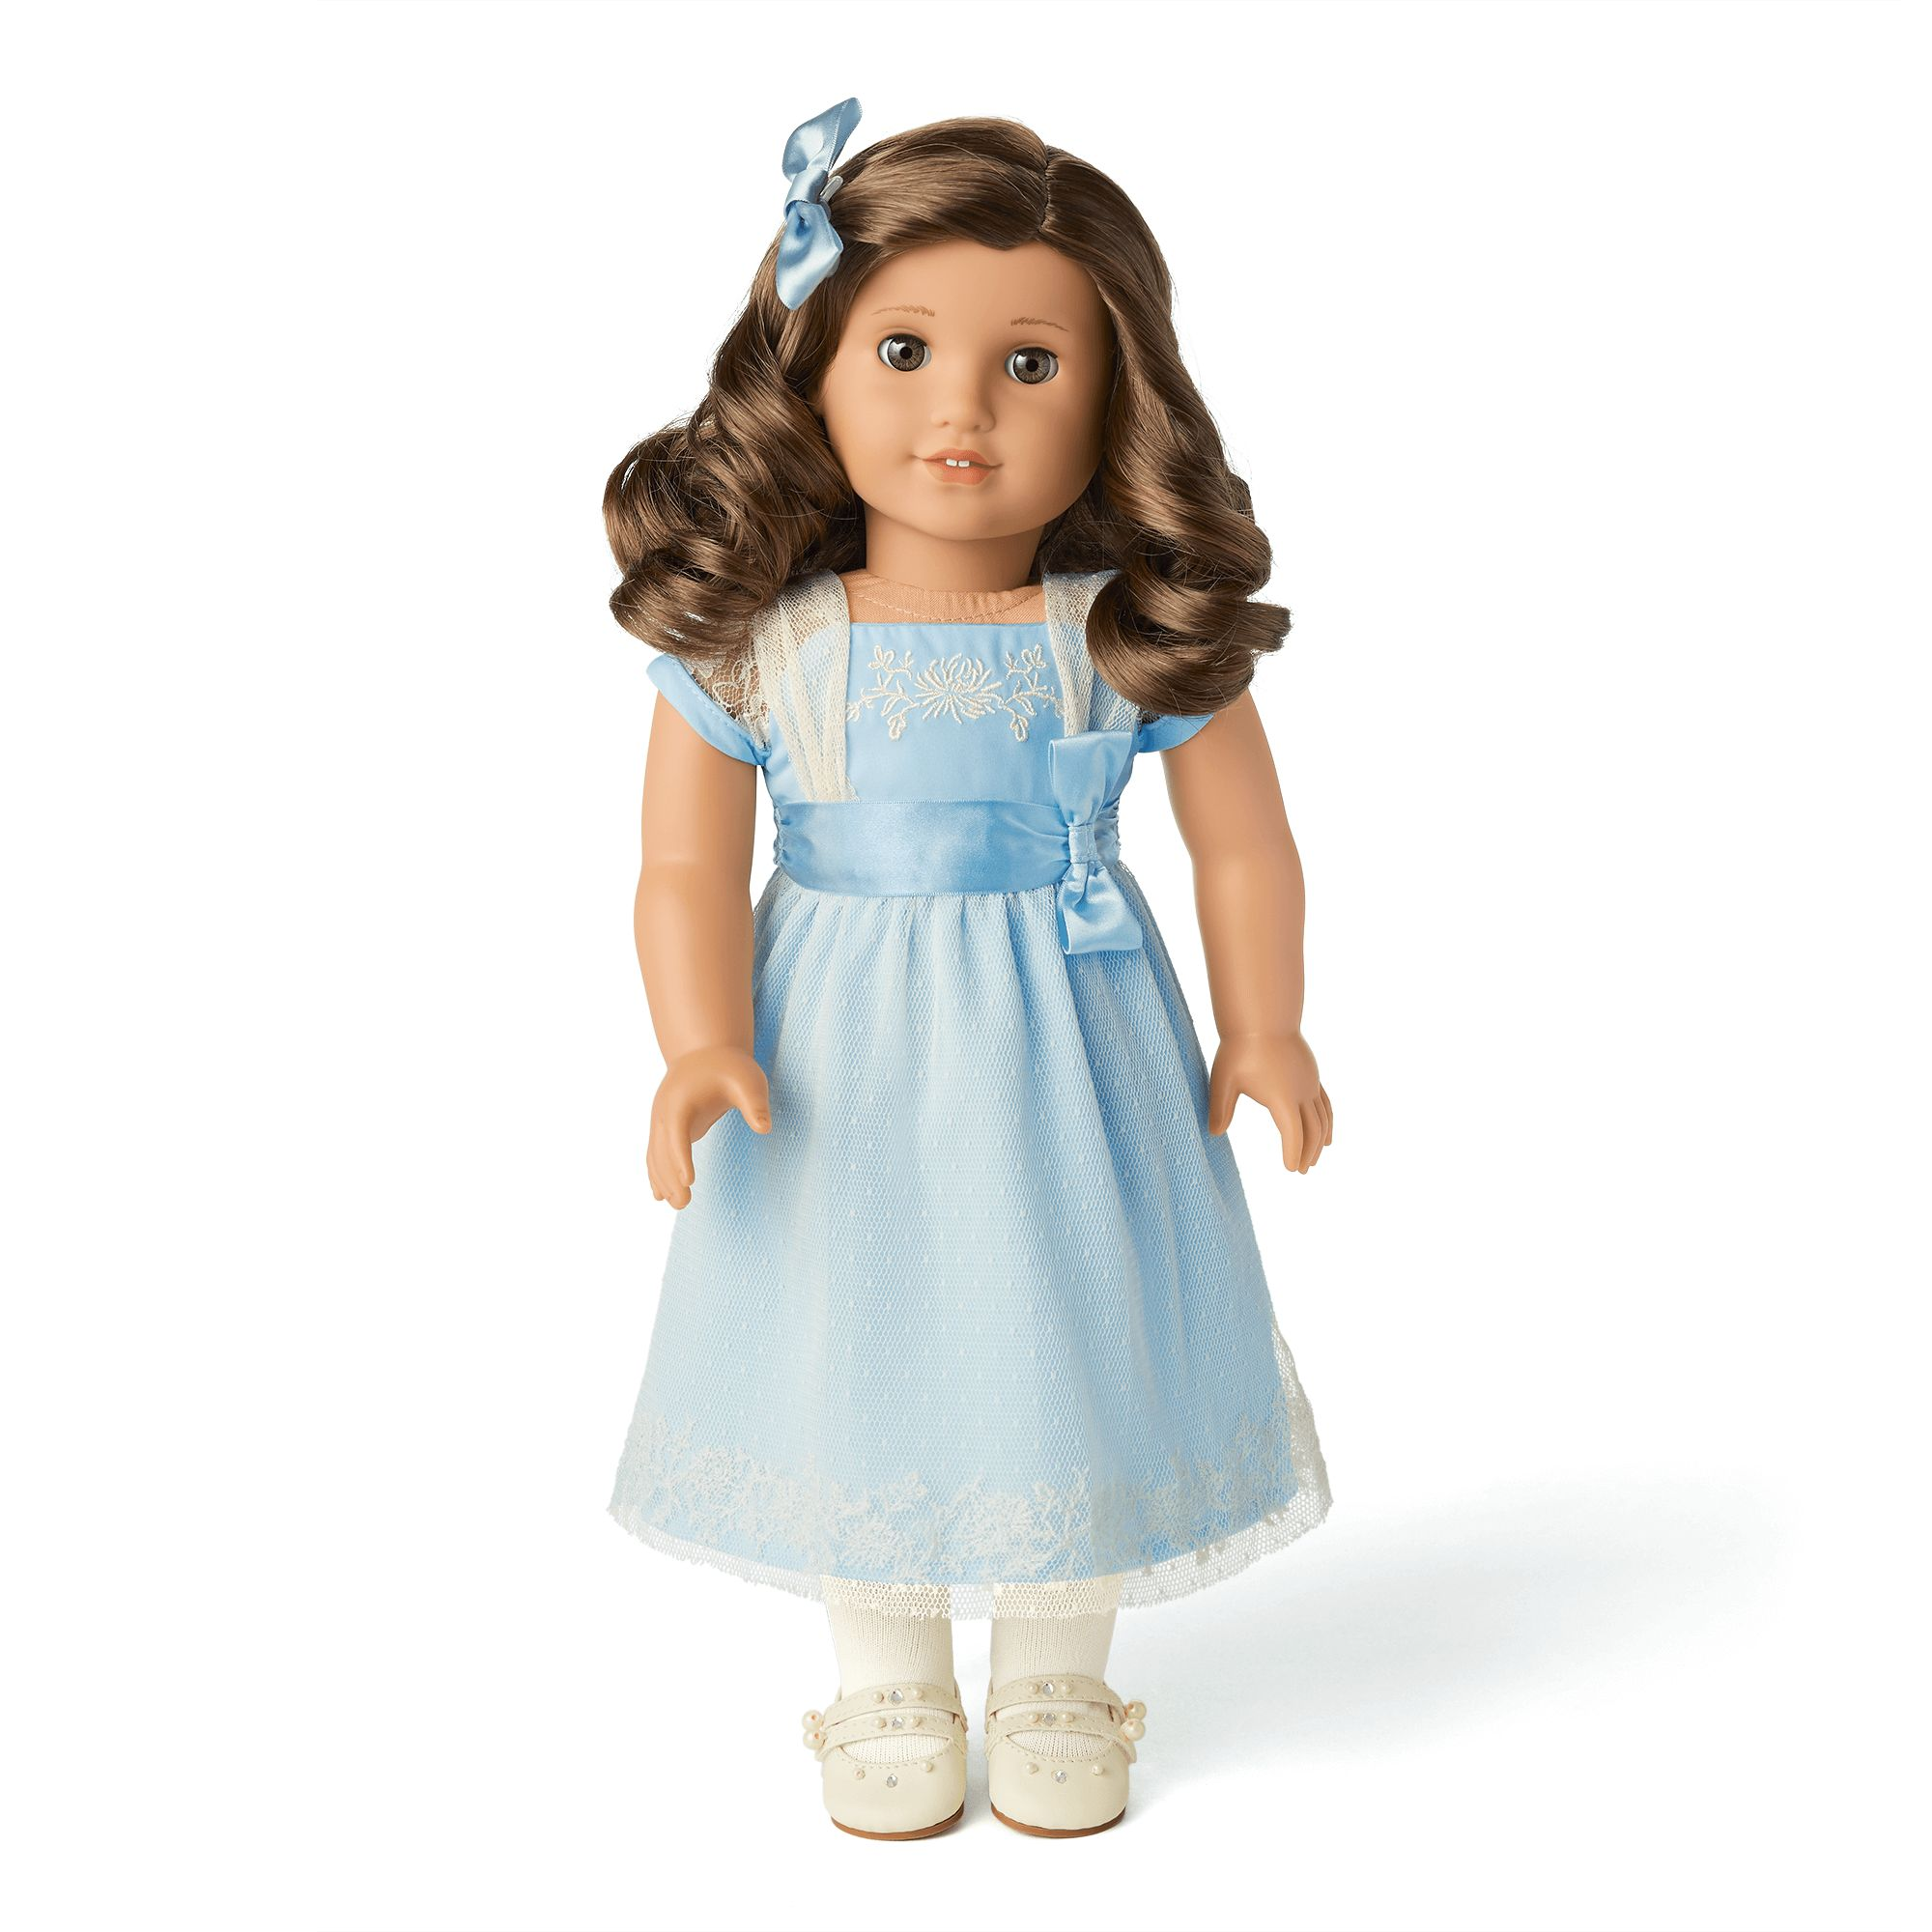 Rebecca's Hanukkah Outfit for 5-inch Dolls